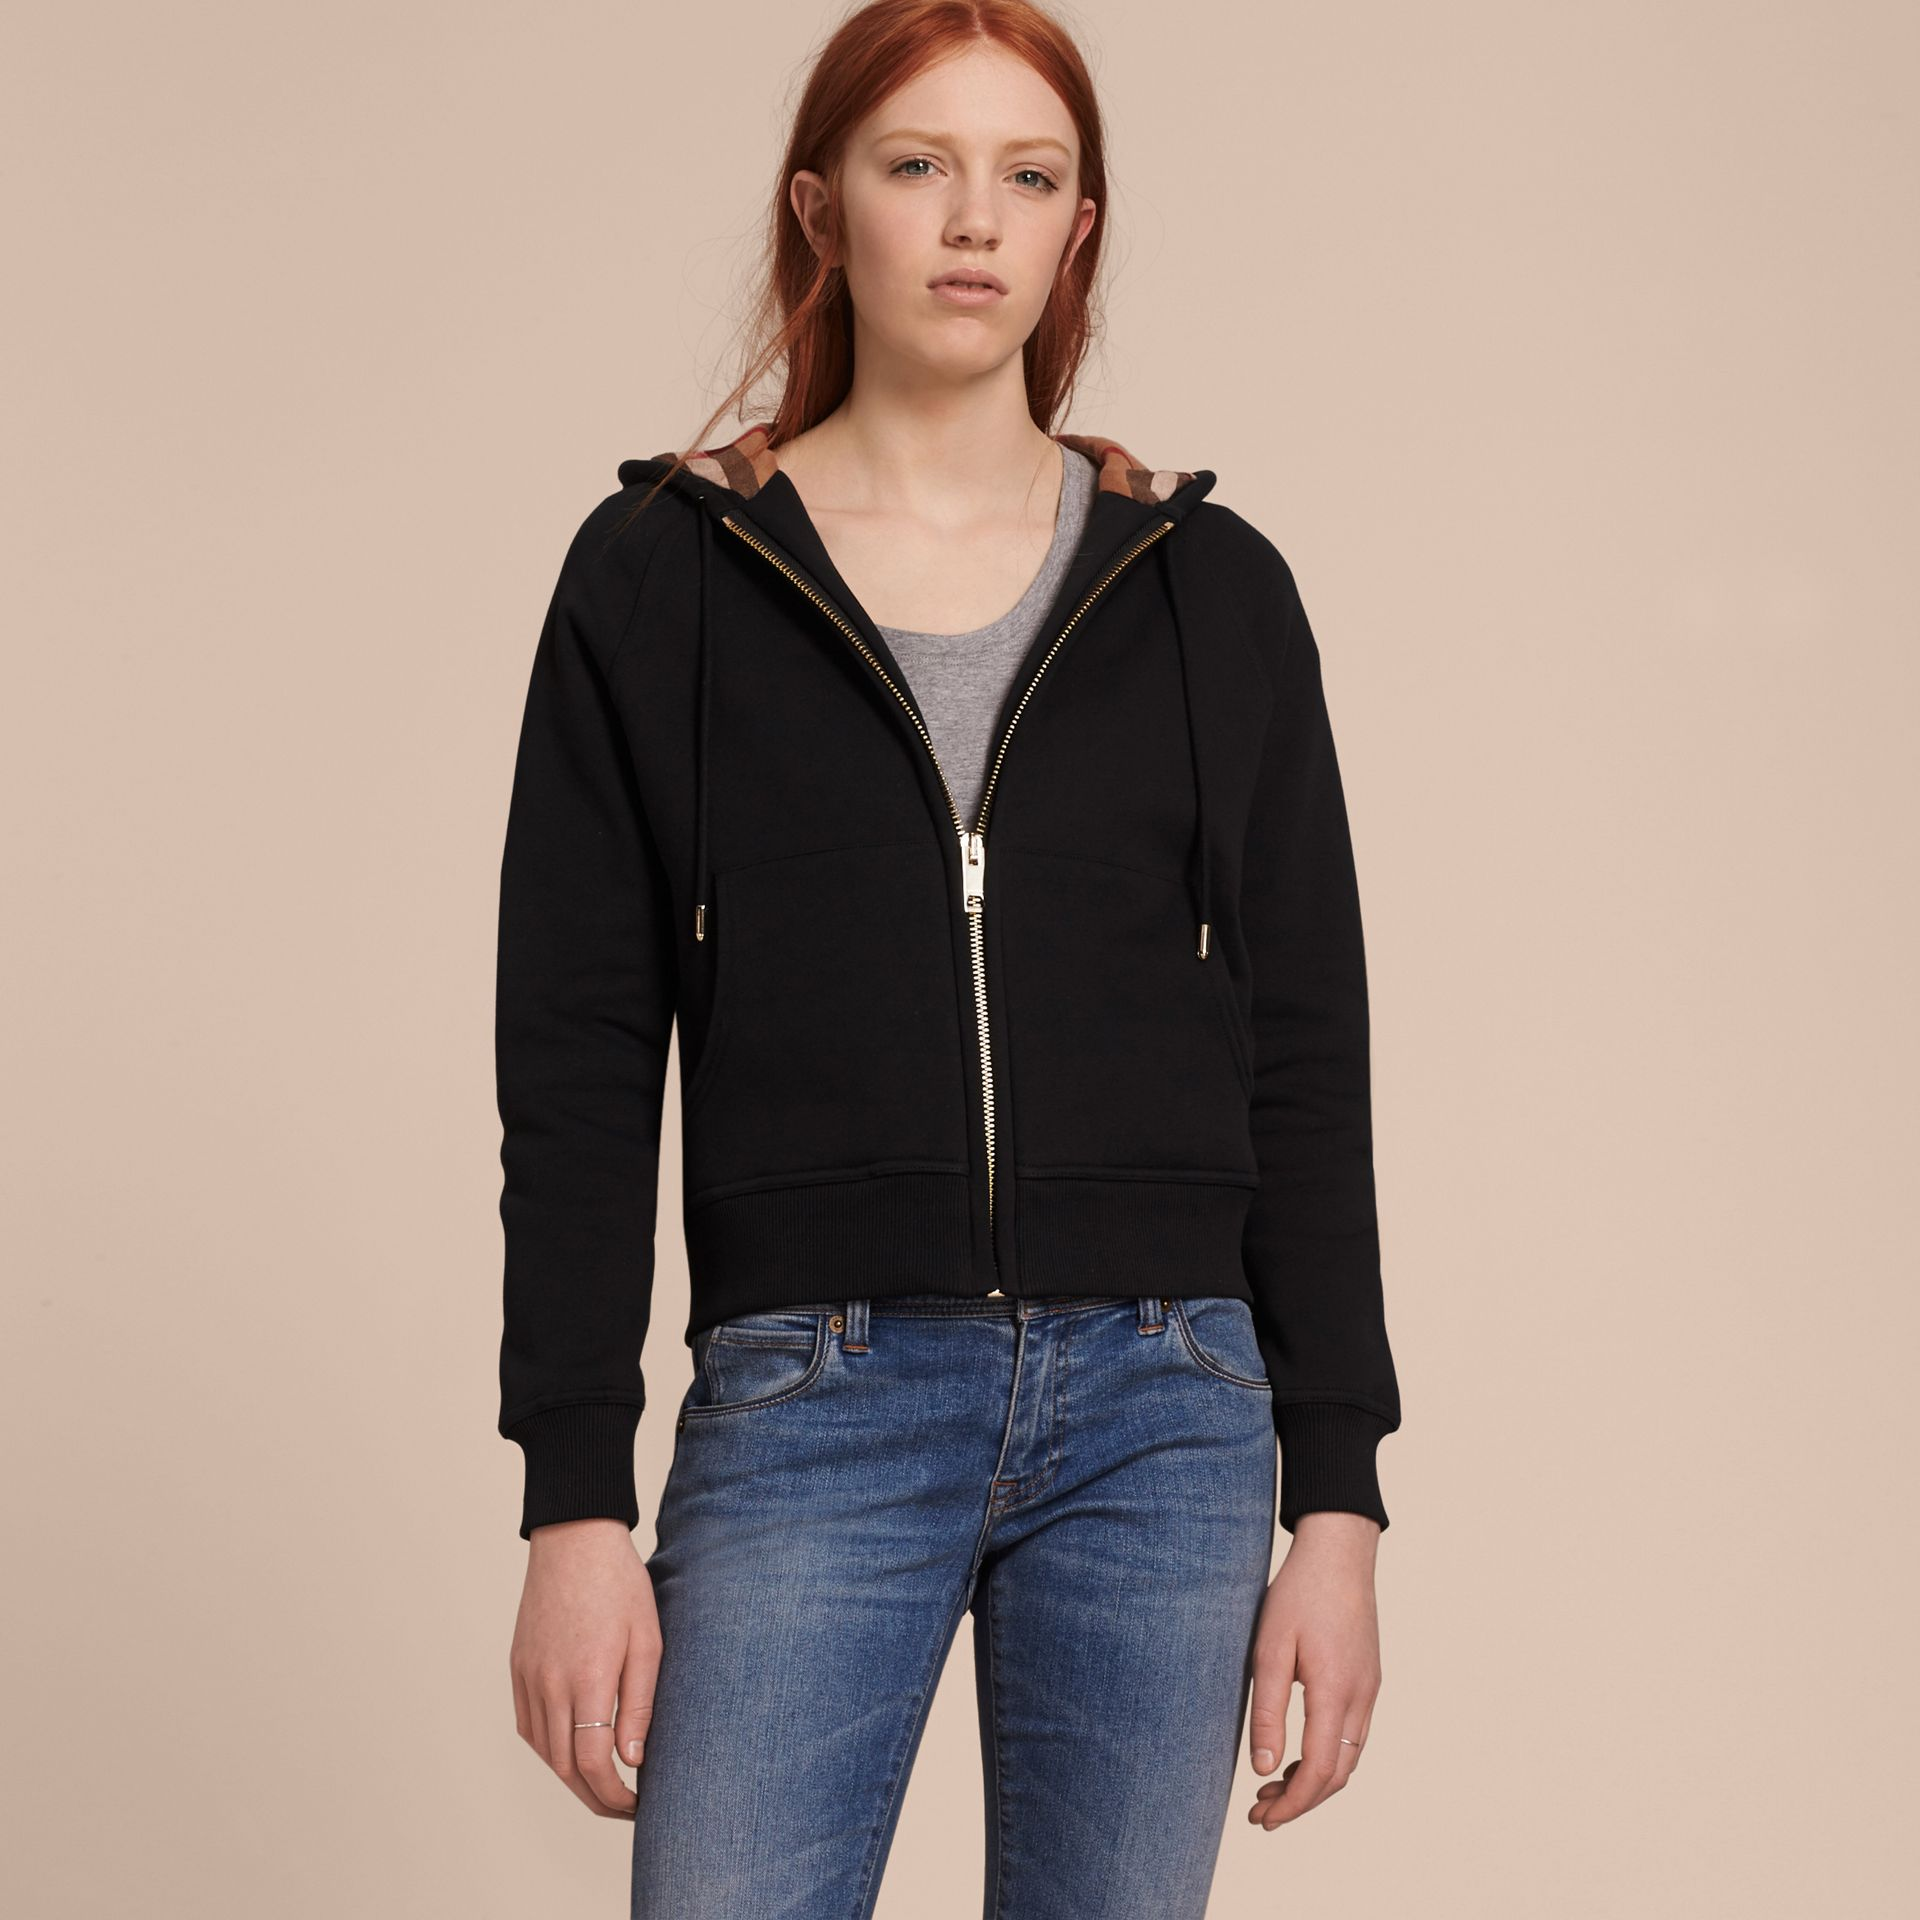 Black Hooded Zip-front Cotton Blend Sweatshirt Black - gallery image 6